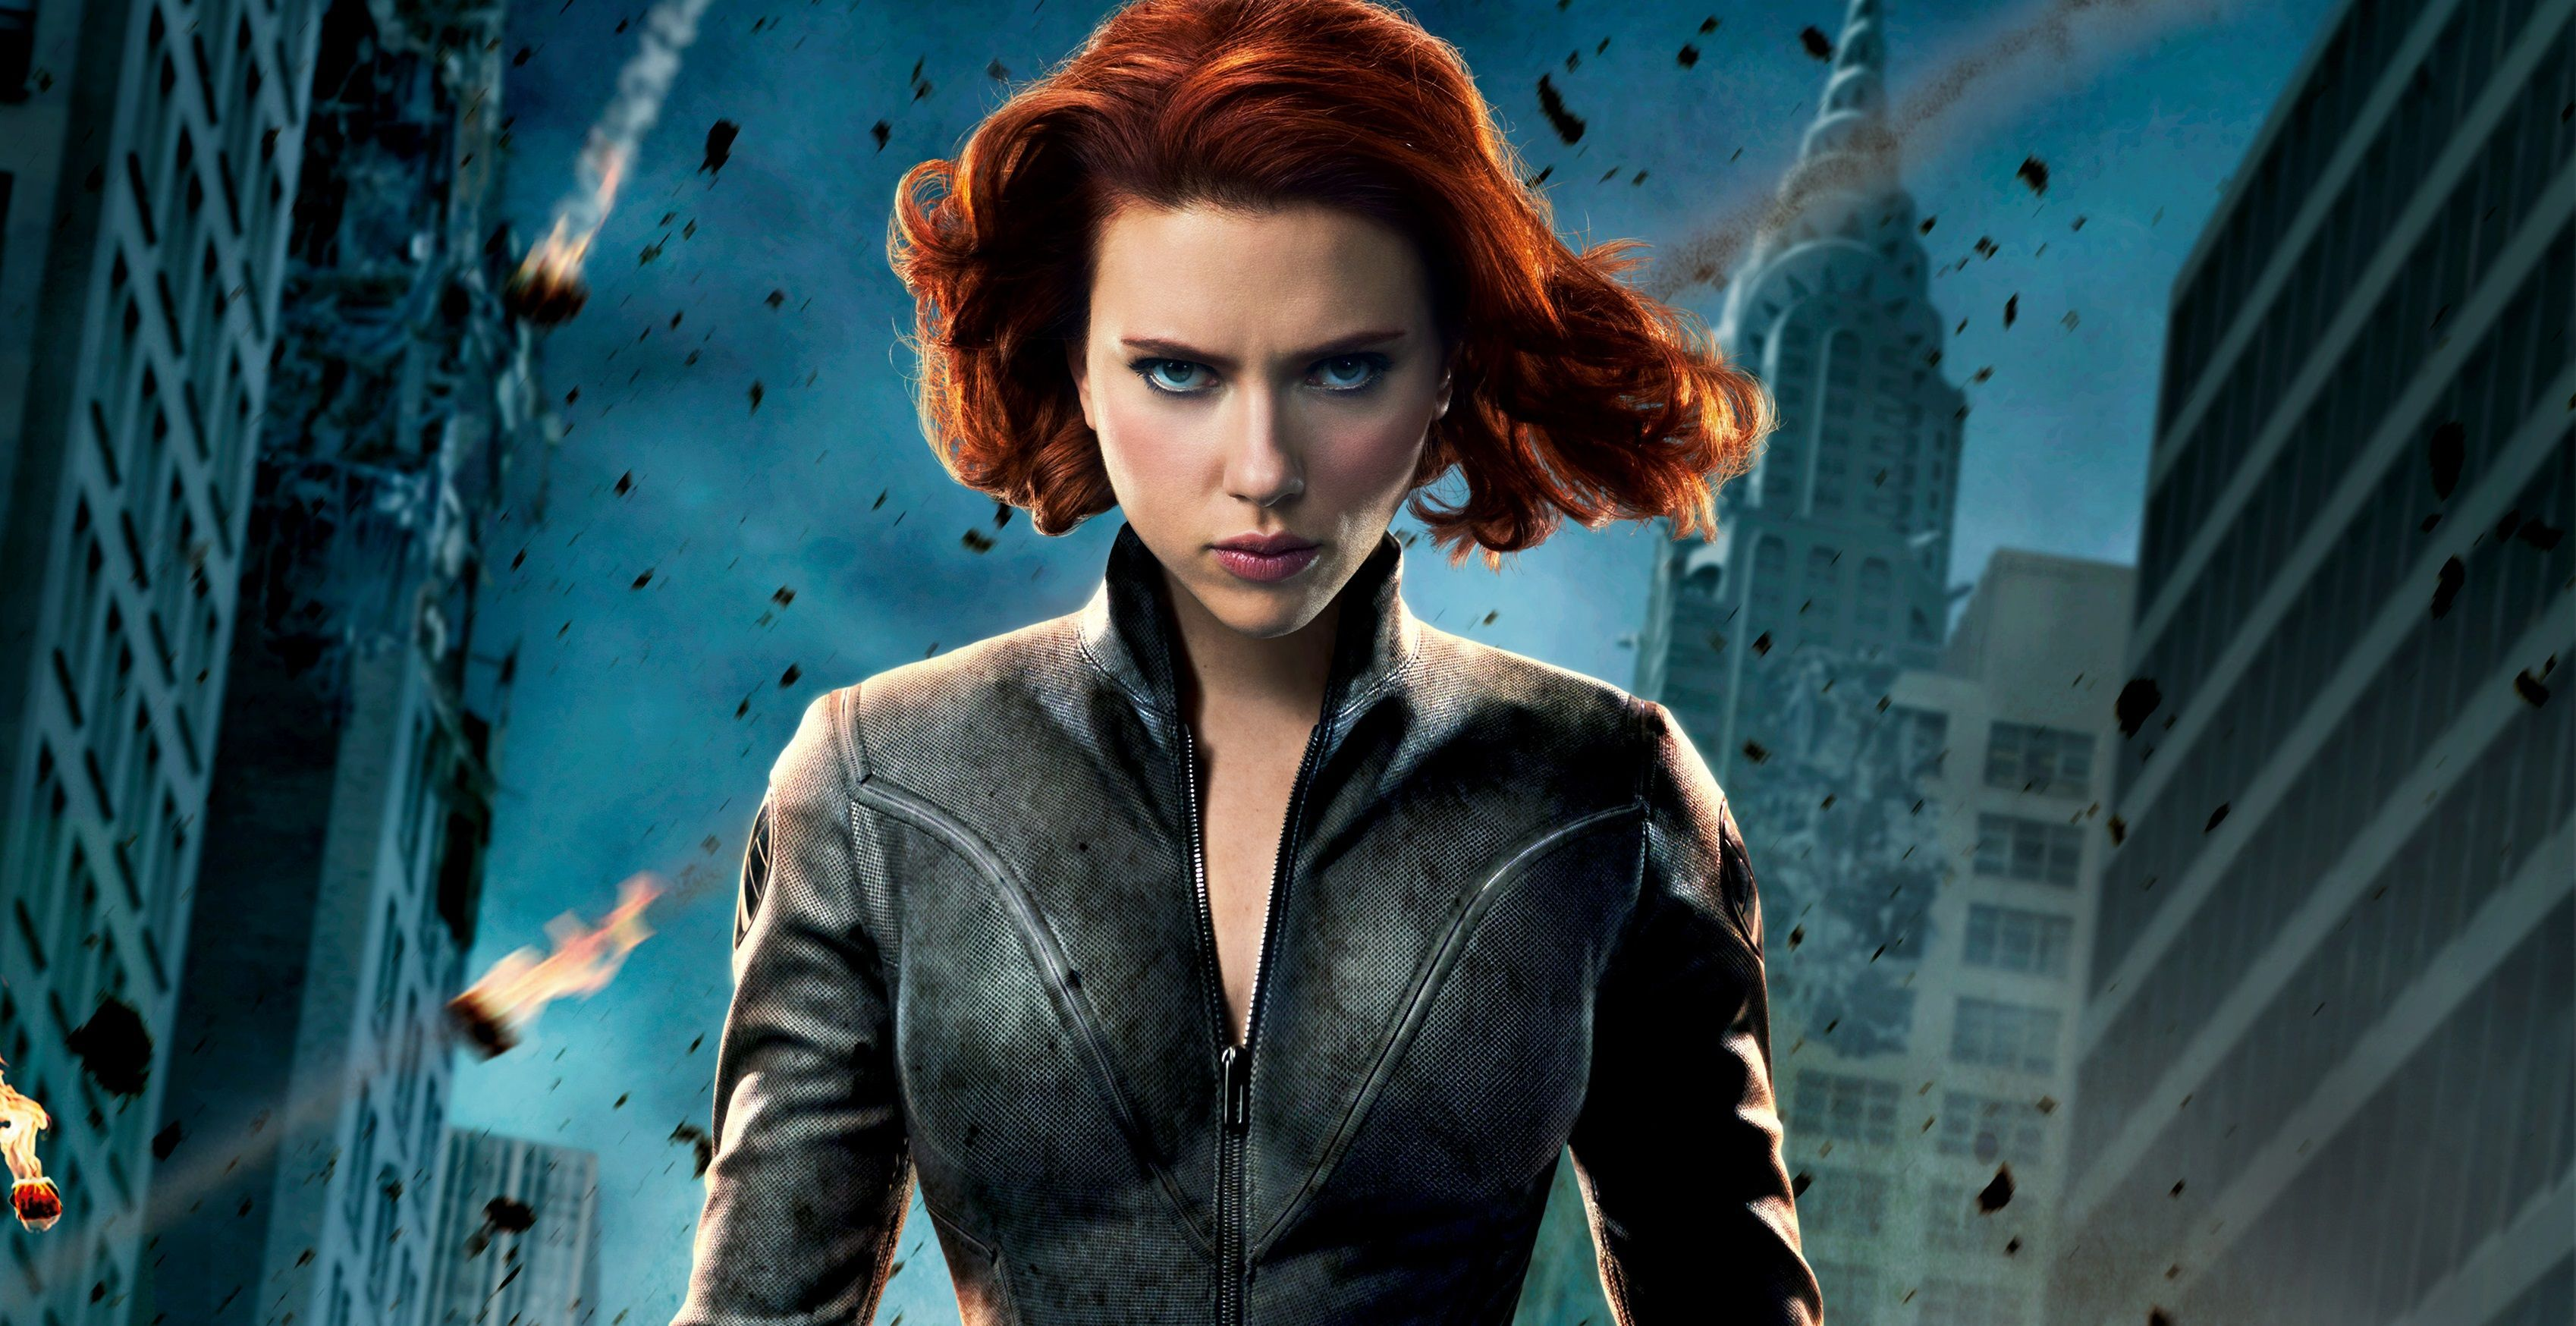 12 Underrated Female Superheroes Who Deserve Their Own Movies